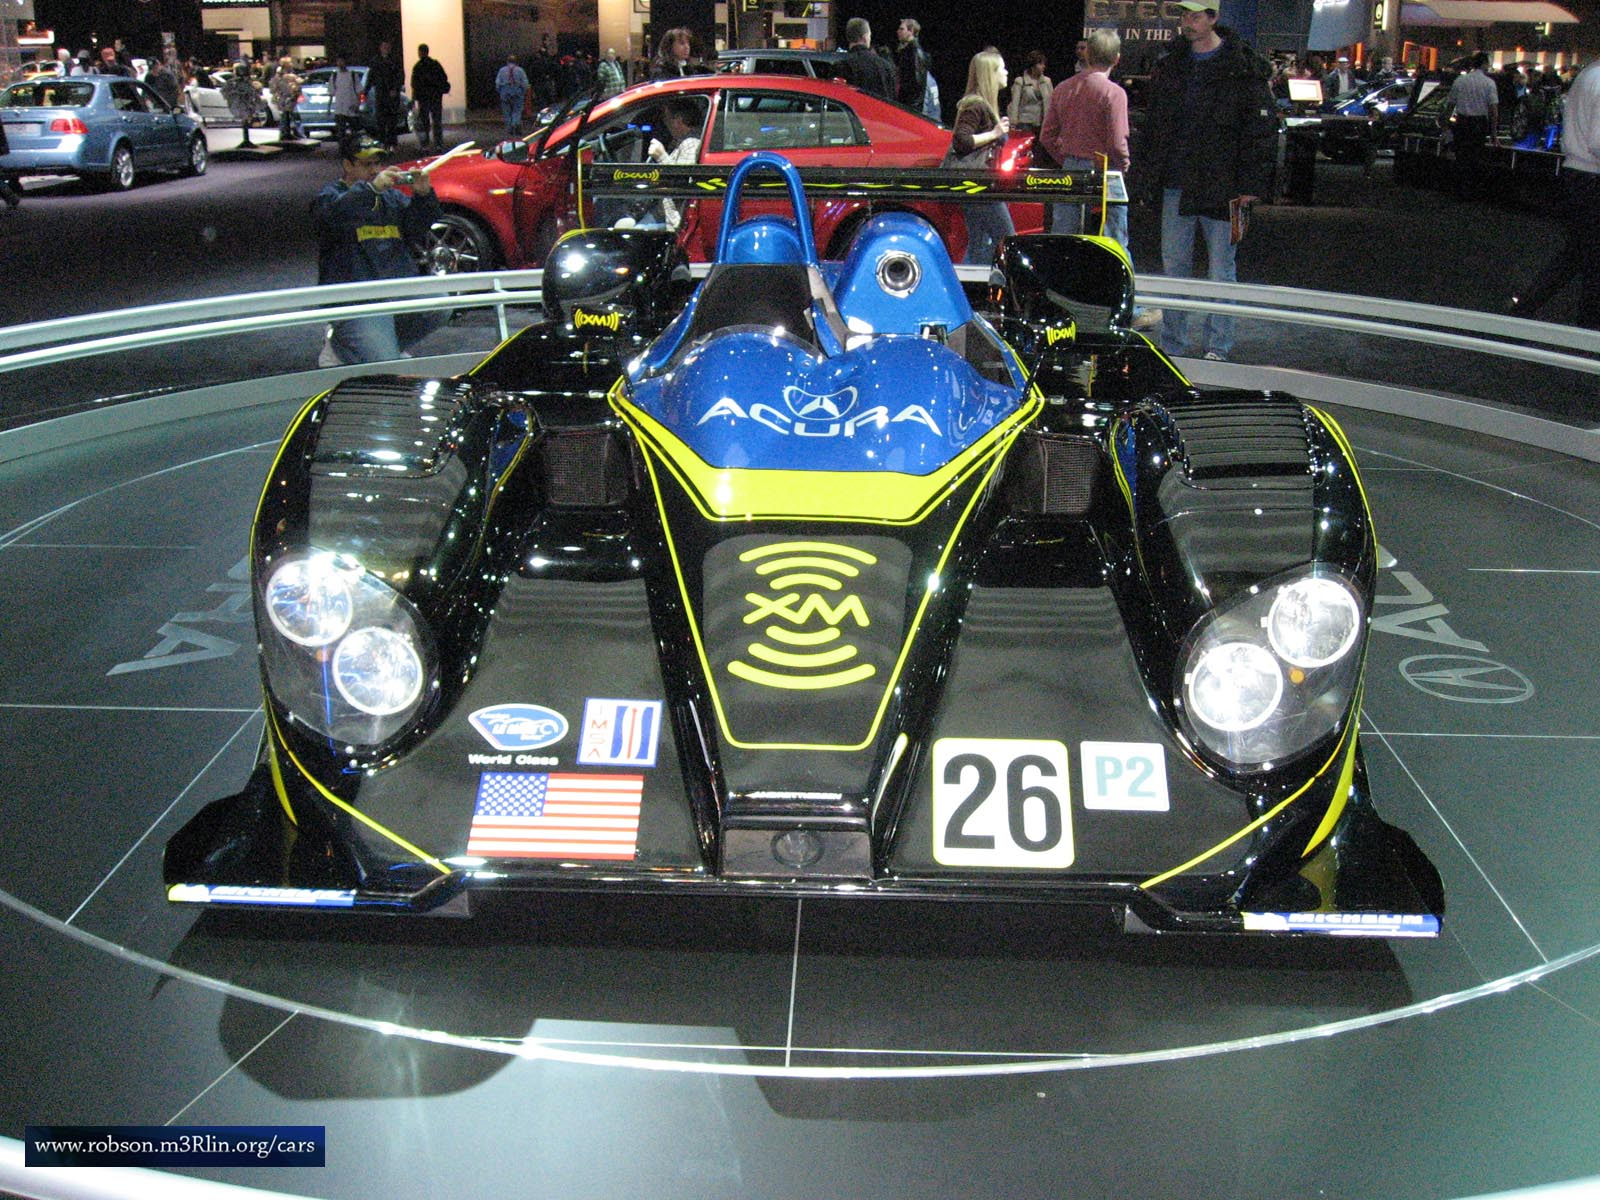 The XM car (powered by Acura) took first in the LMP2 class at the historic Twelve Hours of Sebring race.